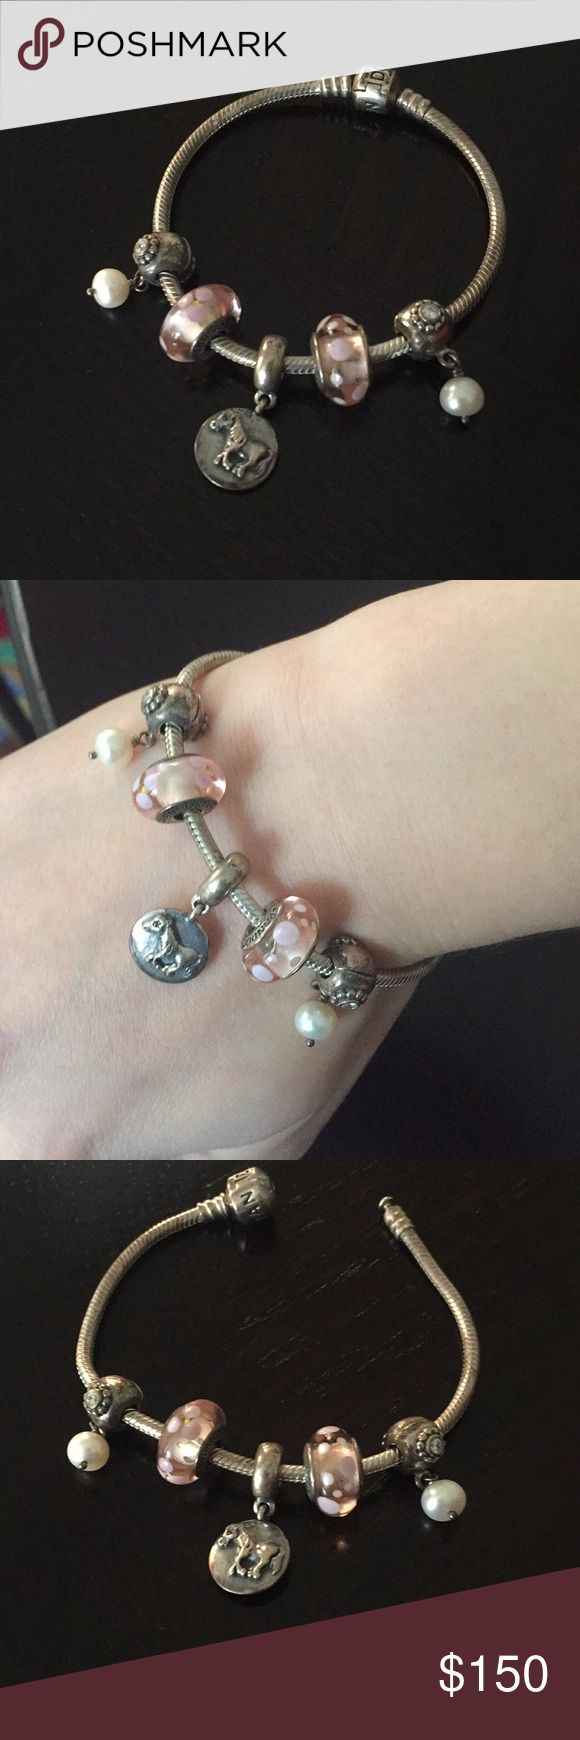 Authentic pandora bracelet with 5 charms Lovely pandora bracelet only worn a few times. Includes the 5 charms shown. All pieces are authentic and purchased directly from a pandora store. Pandora Jewelry Bracelets